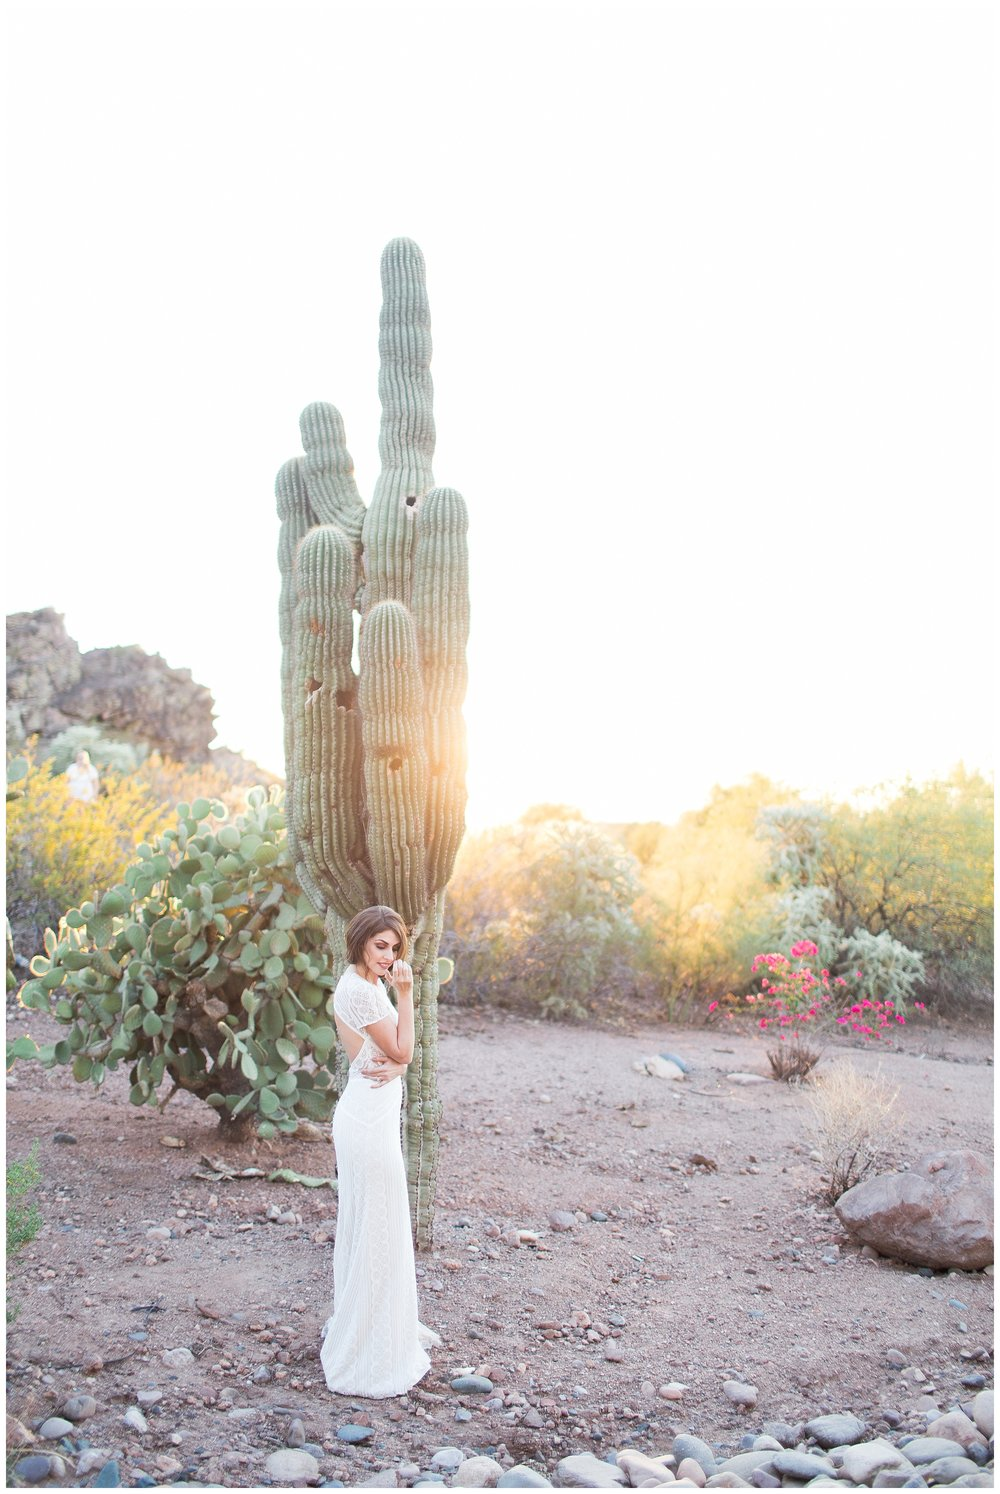 Arizona_Tempe_Wedding_0014.jpg